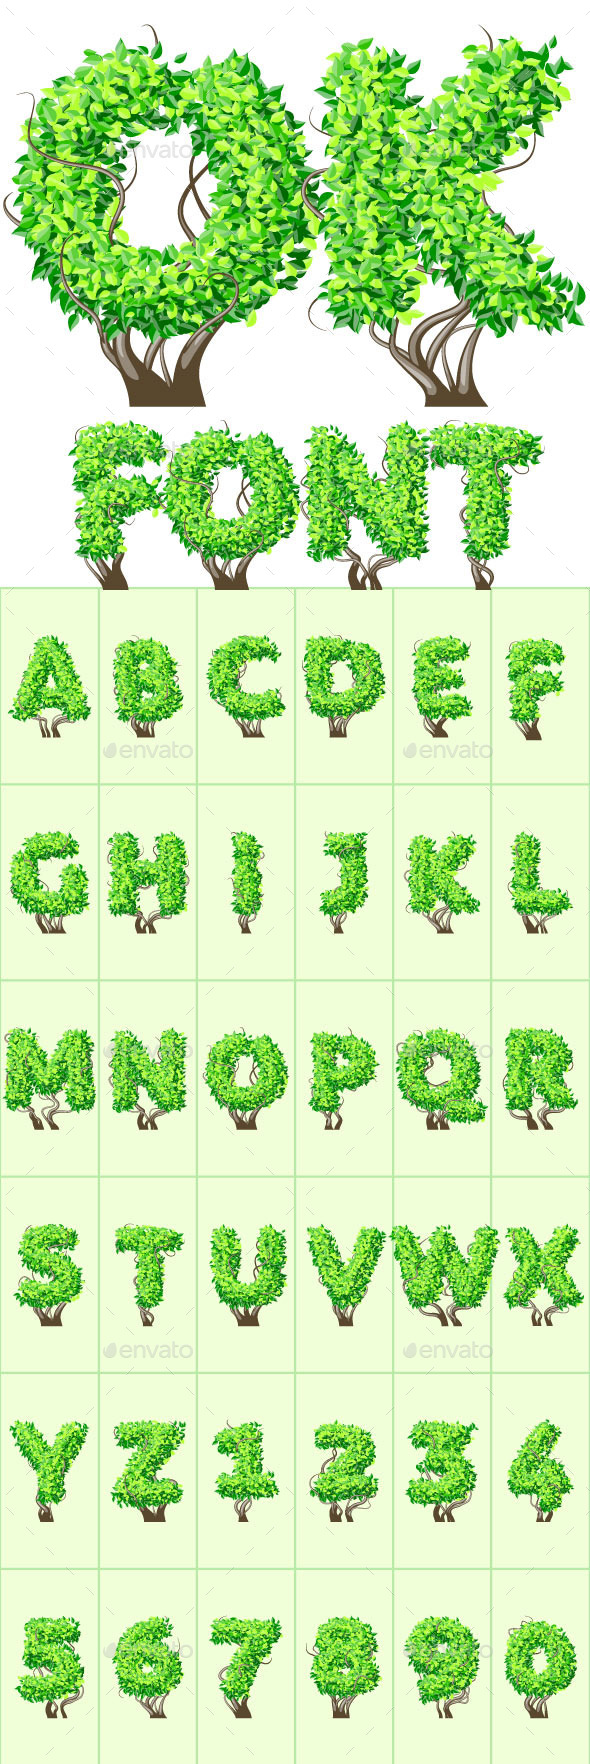 Detailed Tree Aalphabet - Decorative Symbols Decorative